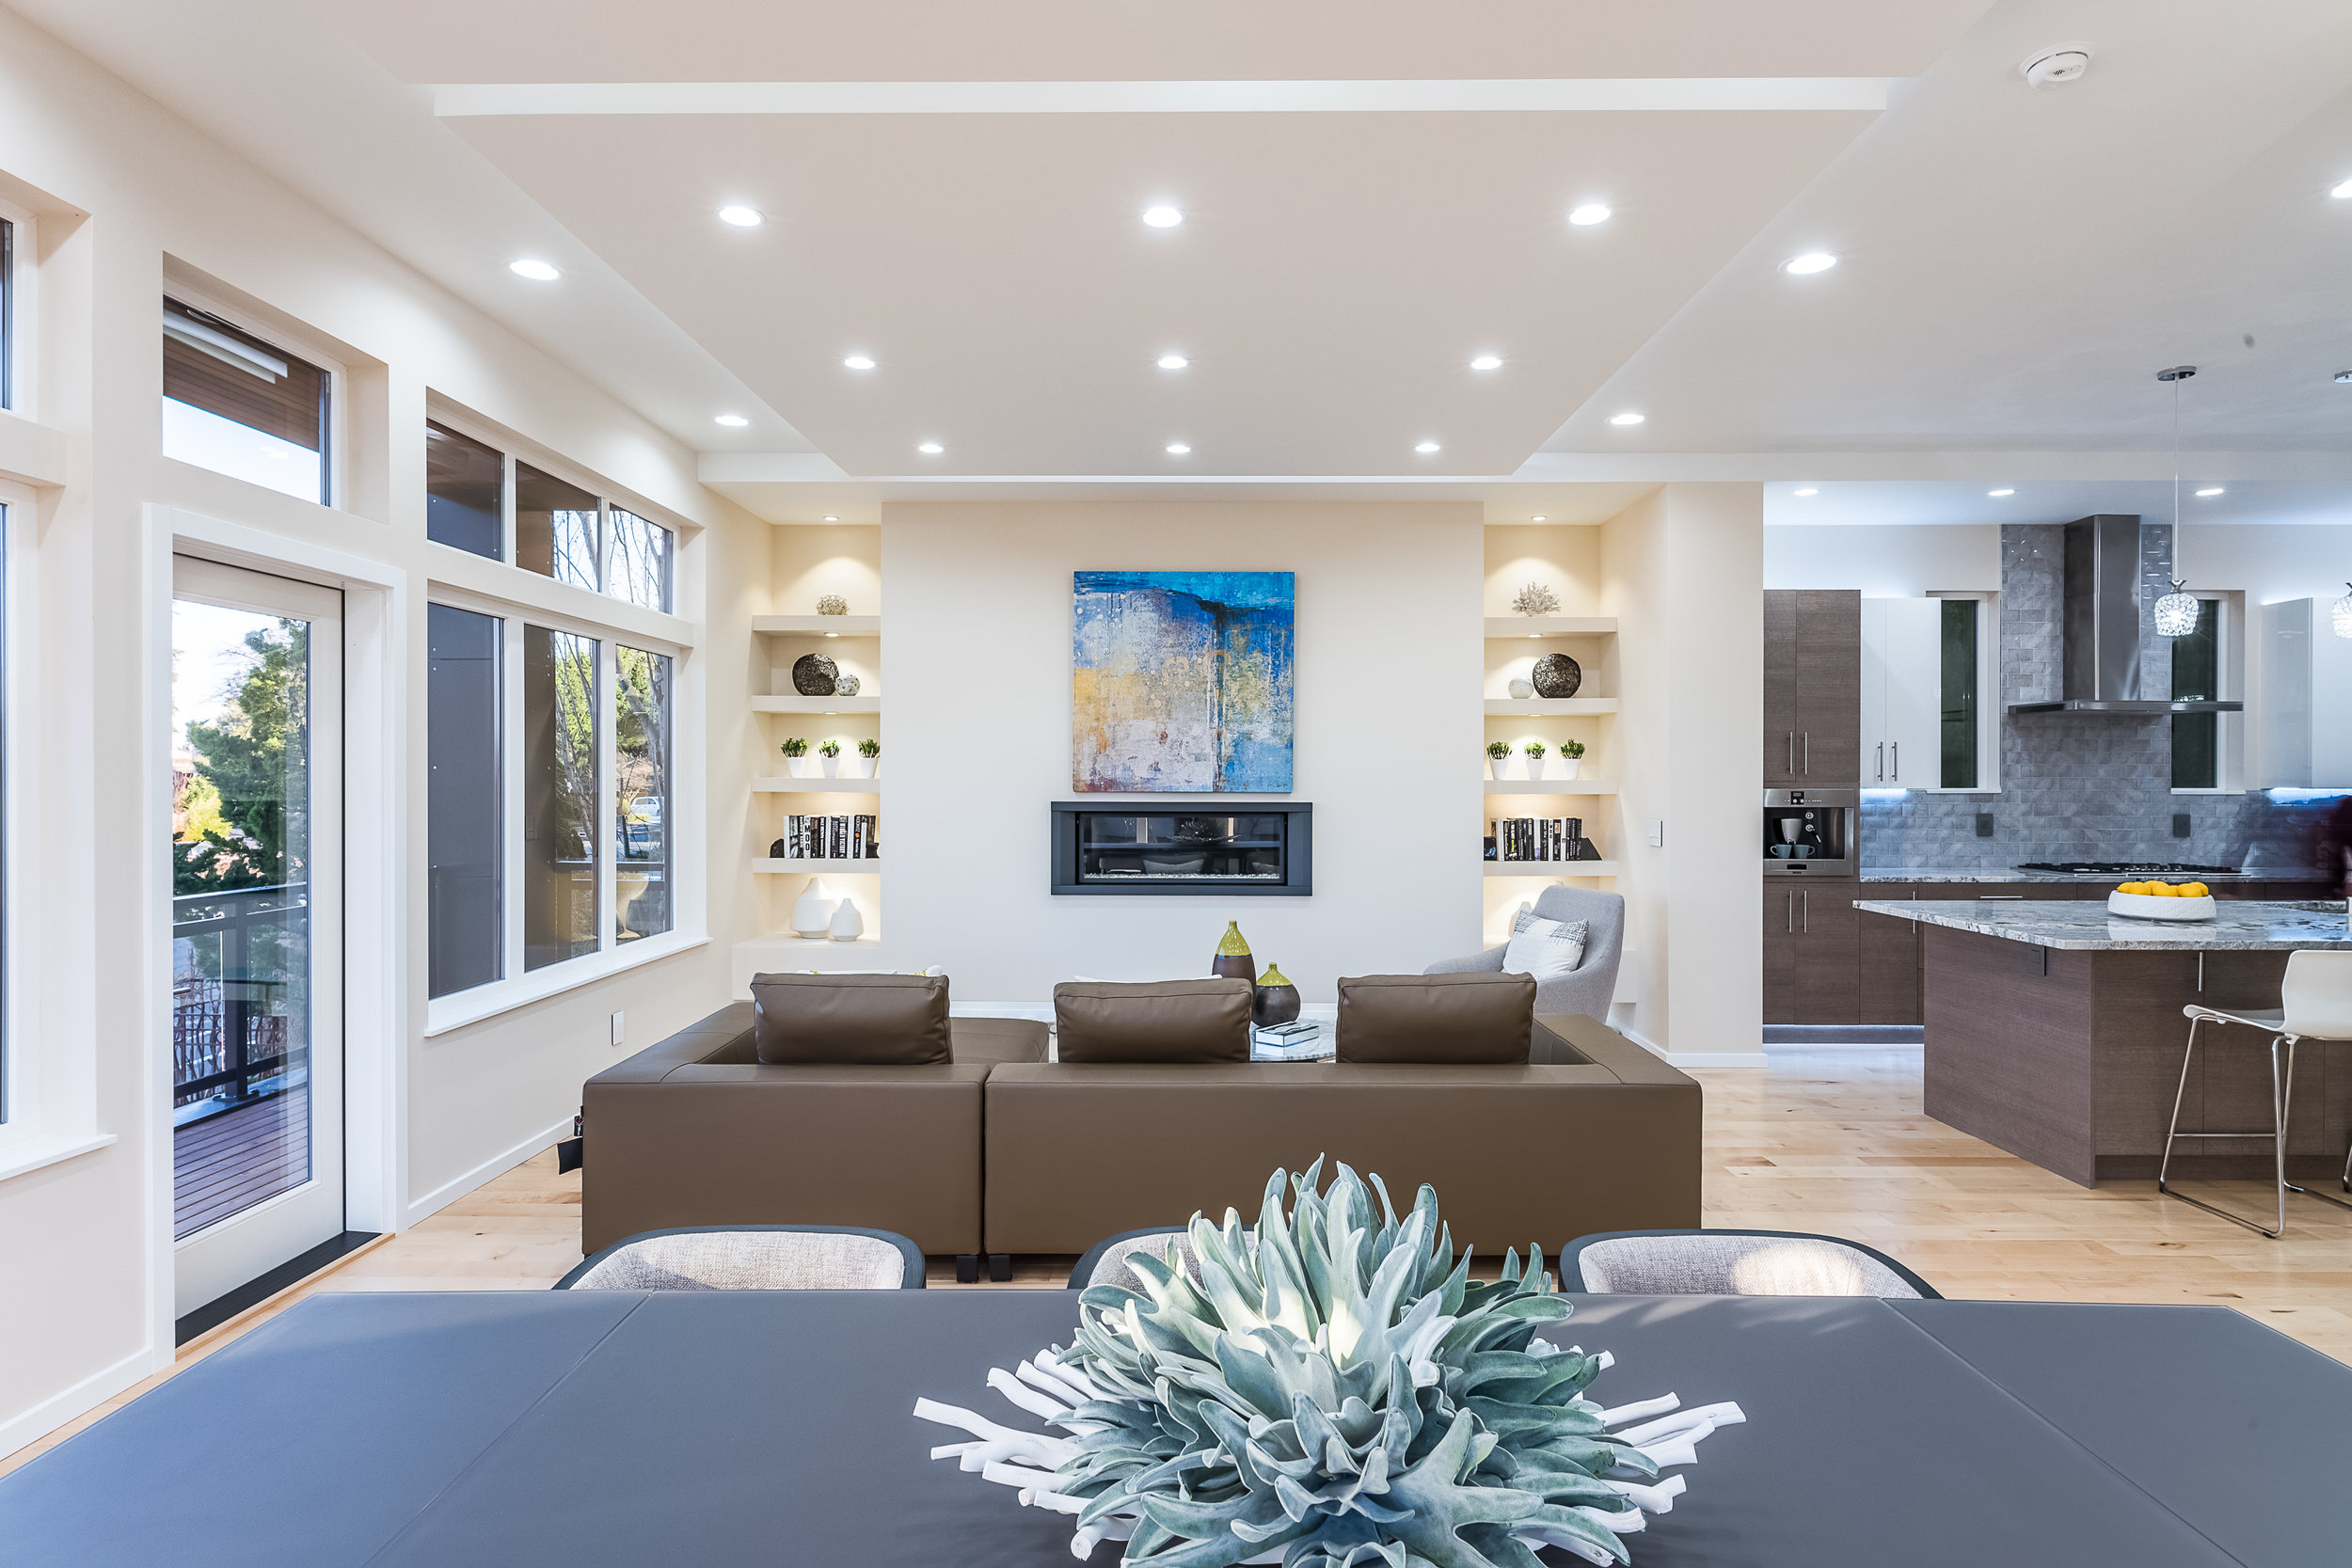 Interior Design In Seattle Consignment Furniture Home Staging Interior Designers Seattle Bellevue Wa The Enhanced Home